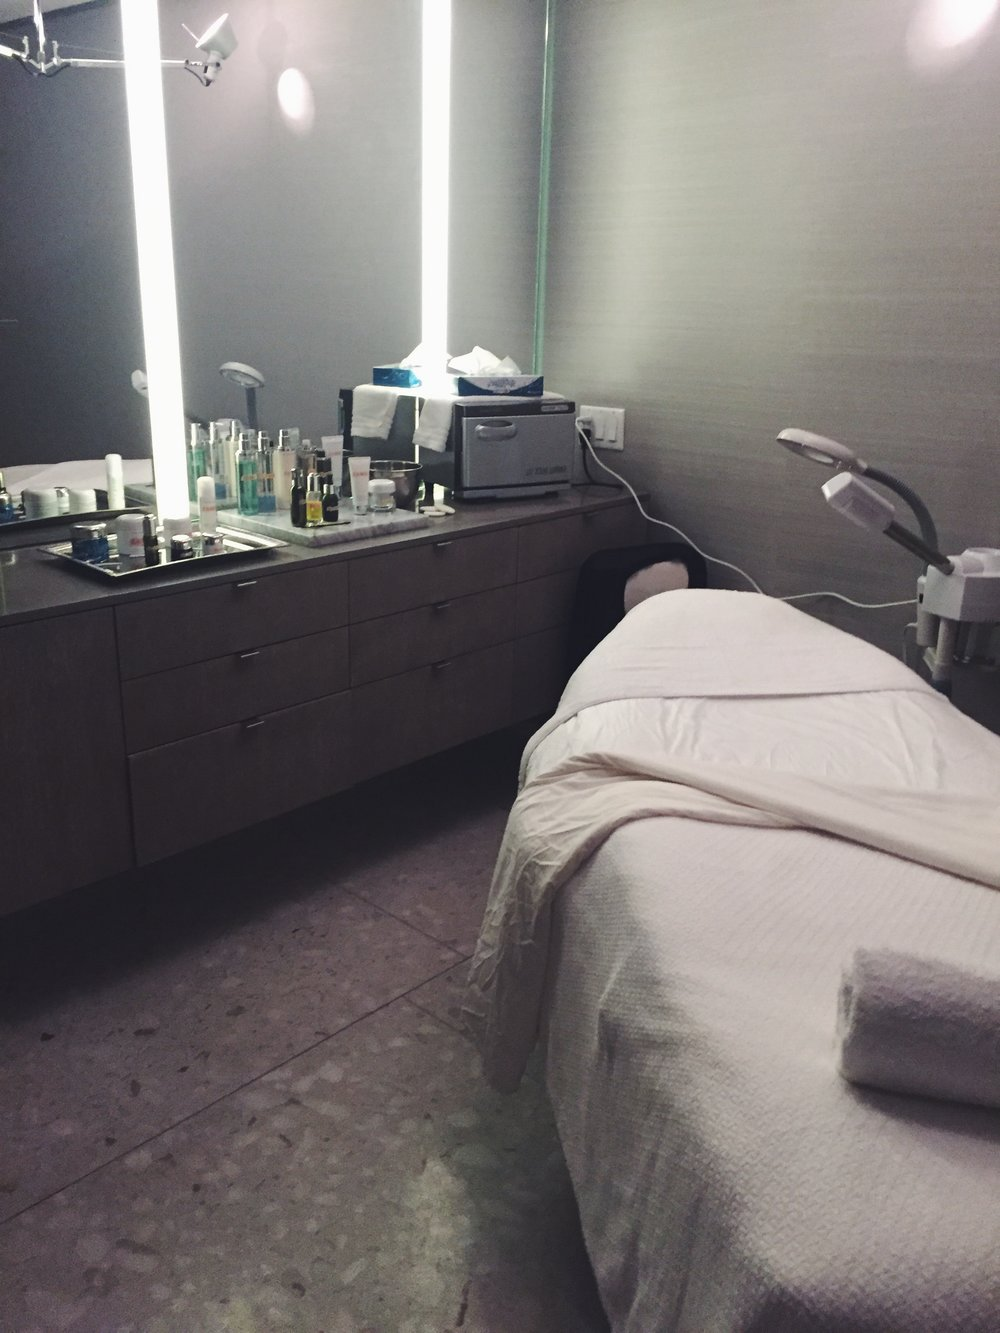 Barney's private facial room